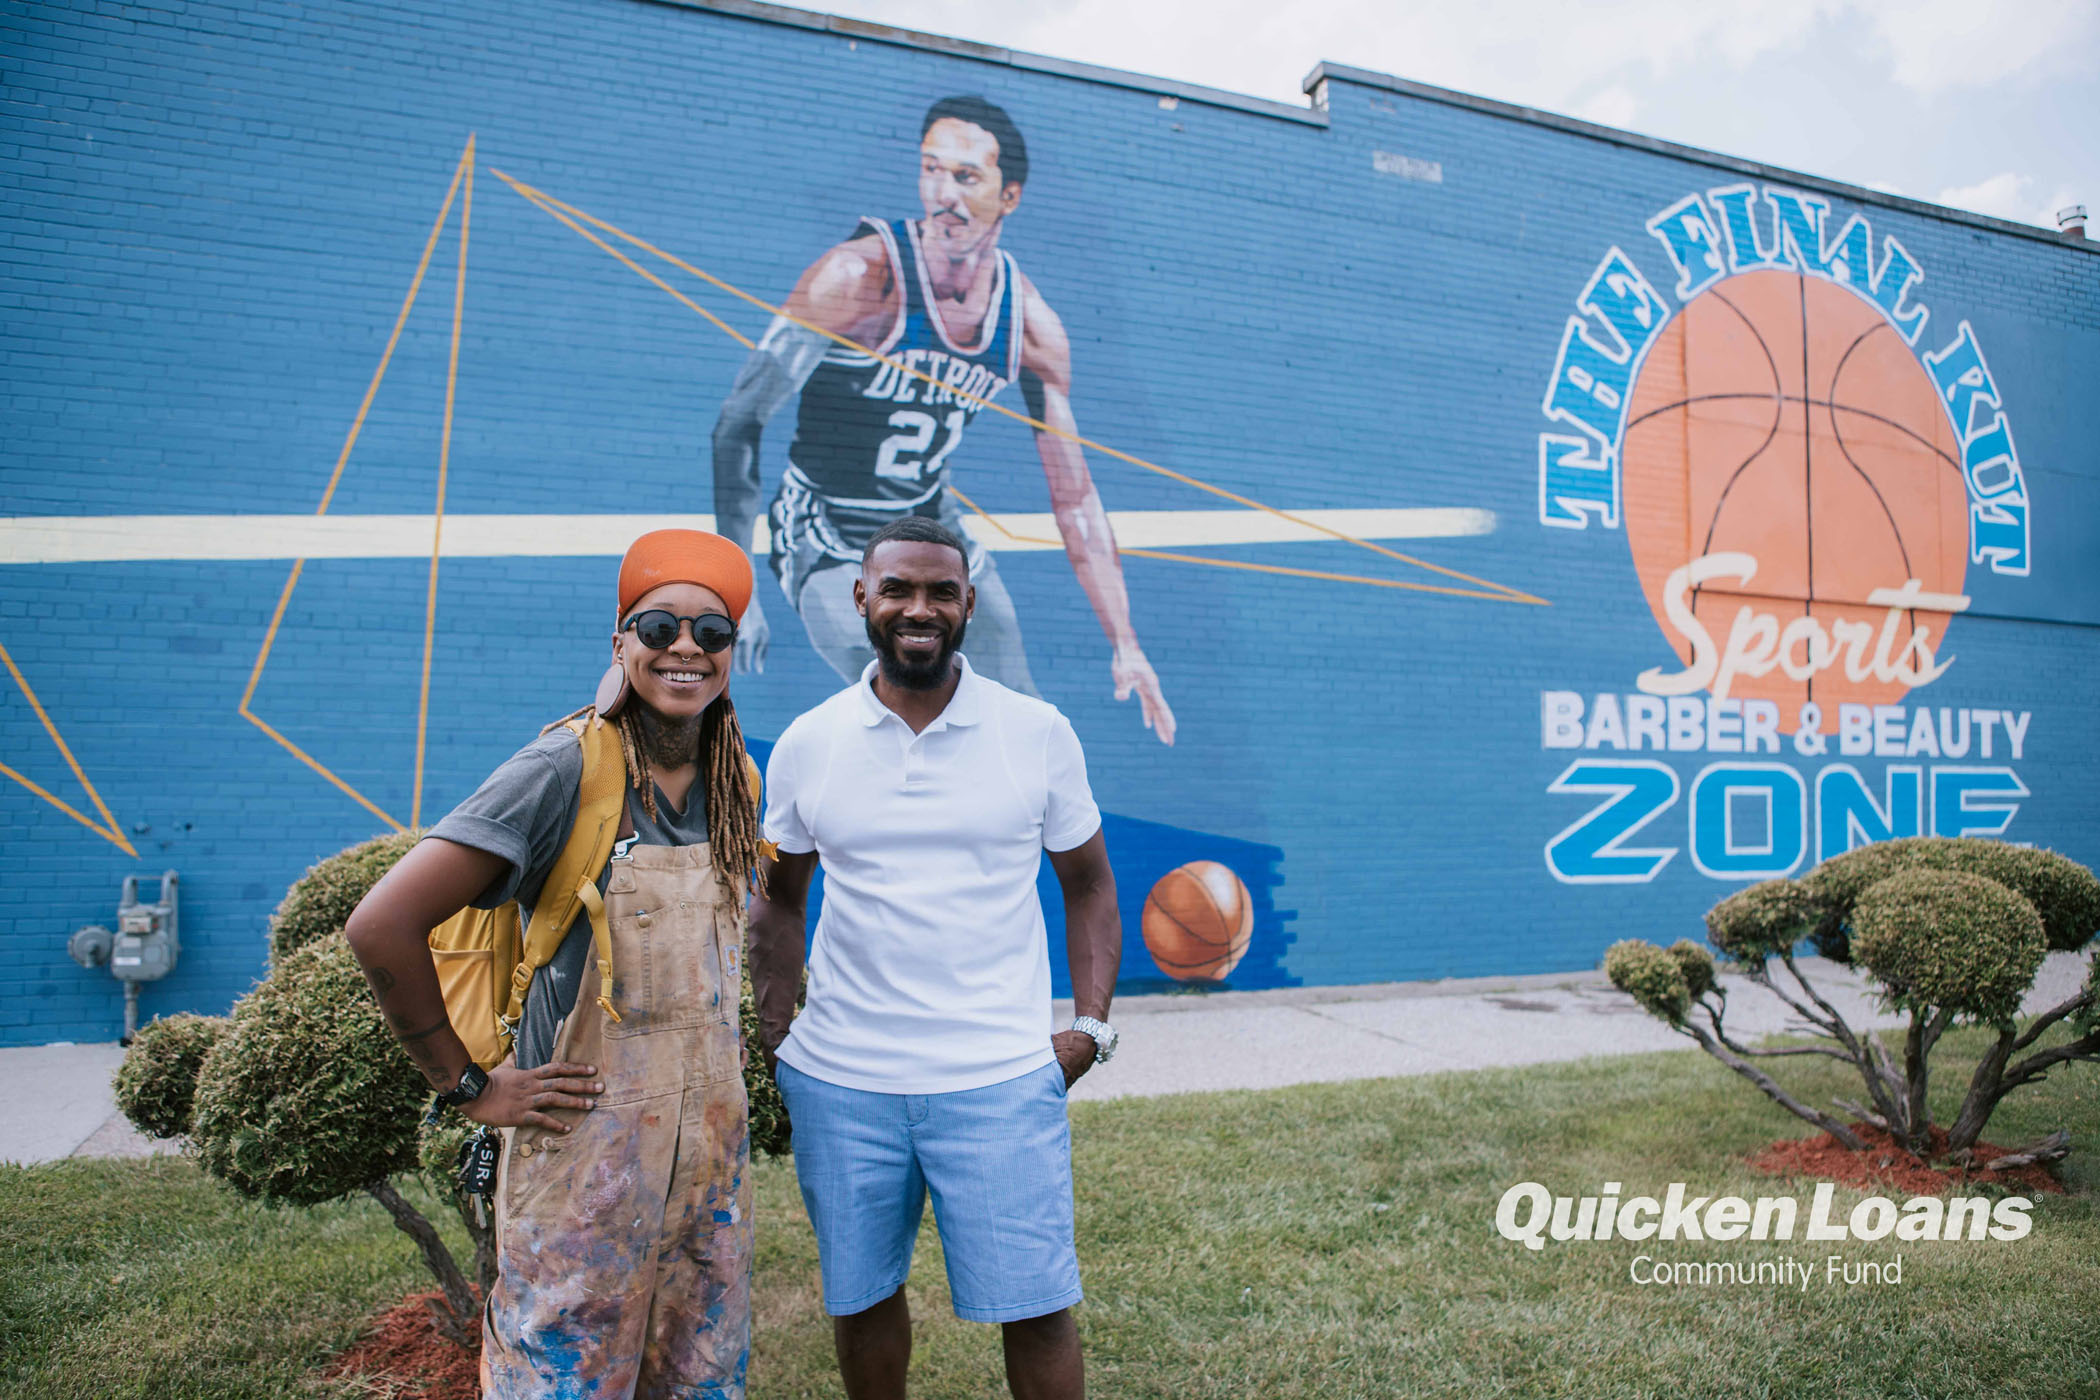 Photo of the artist Bakpak Durden and the Final Cut Barber business owner Kevin in front of the completed mural.